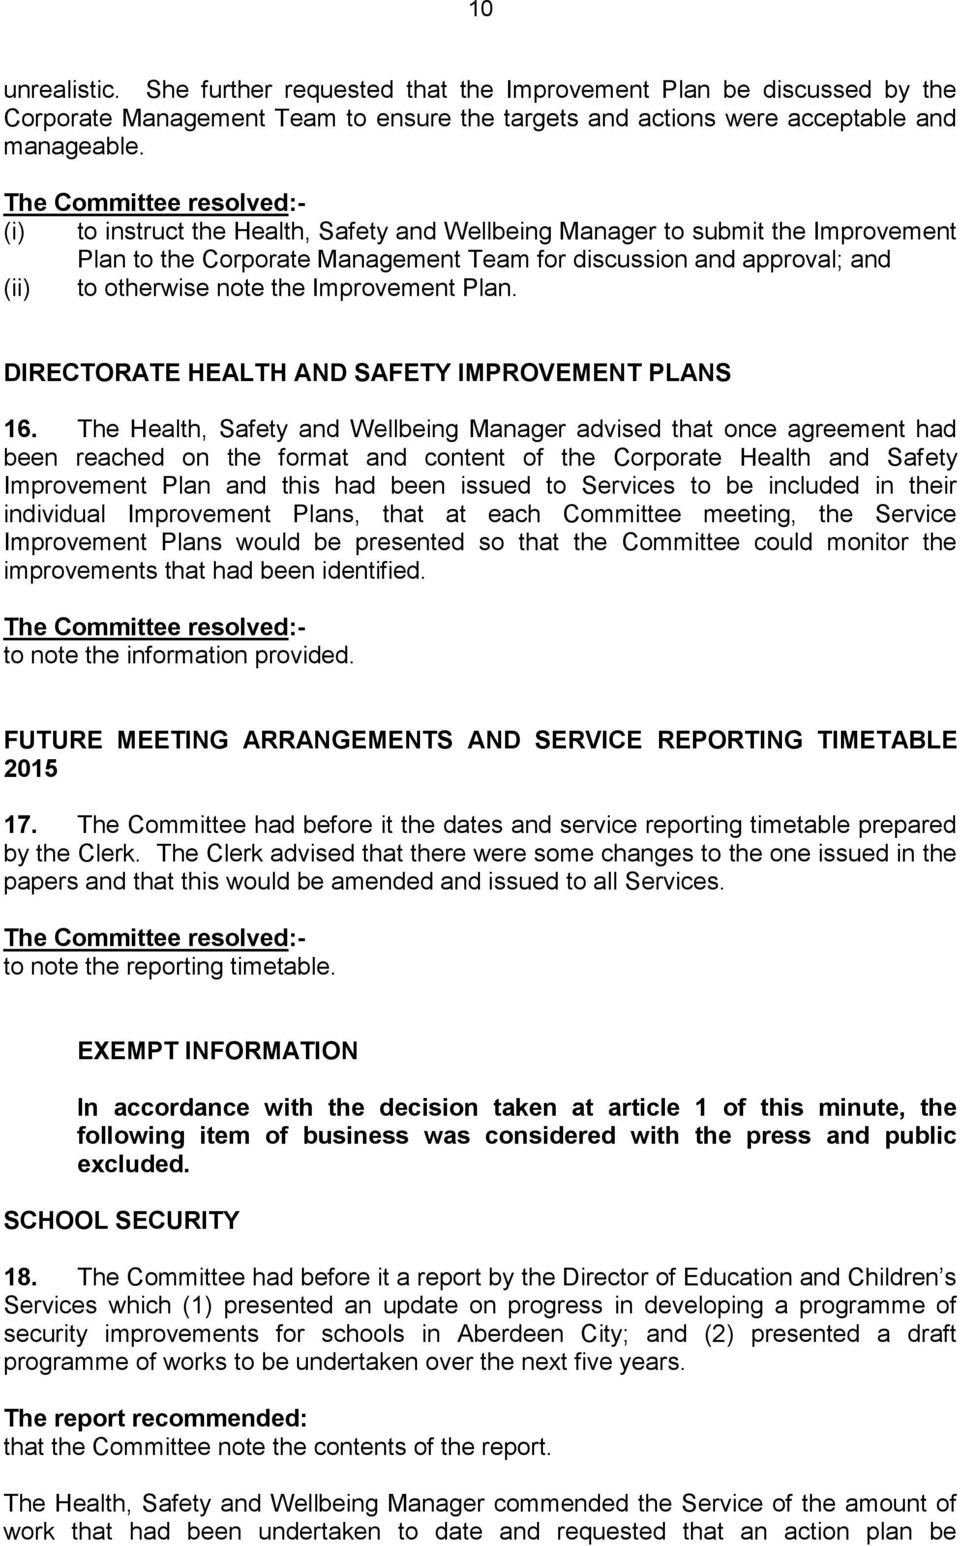 Corporate Health And Safety Committee Pdf